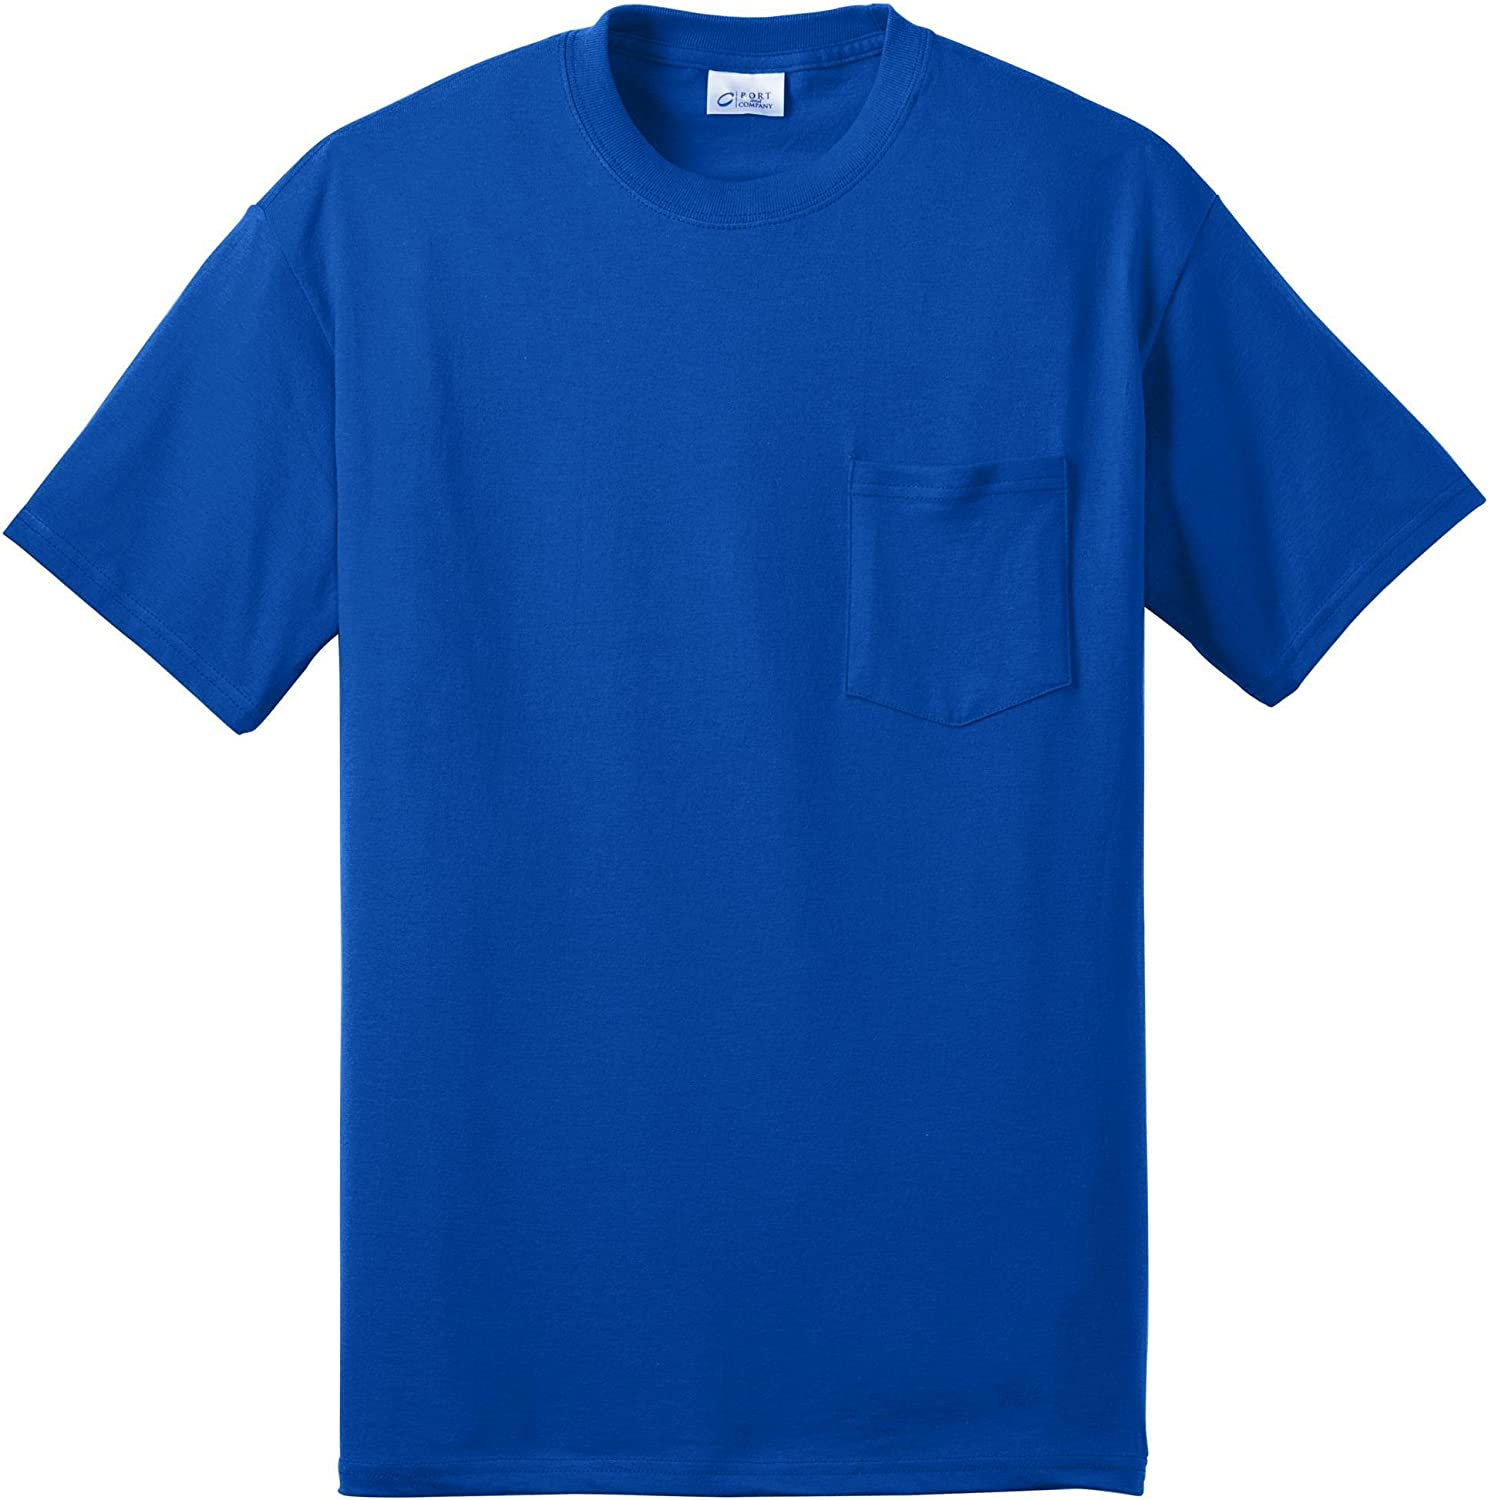 Port & Company Tall 50/50 Cotton/Poly T-Shirt with Pocket>4XLT Royal PC55PT